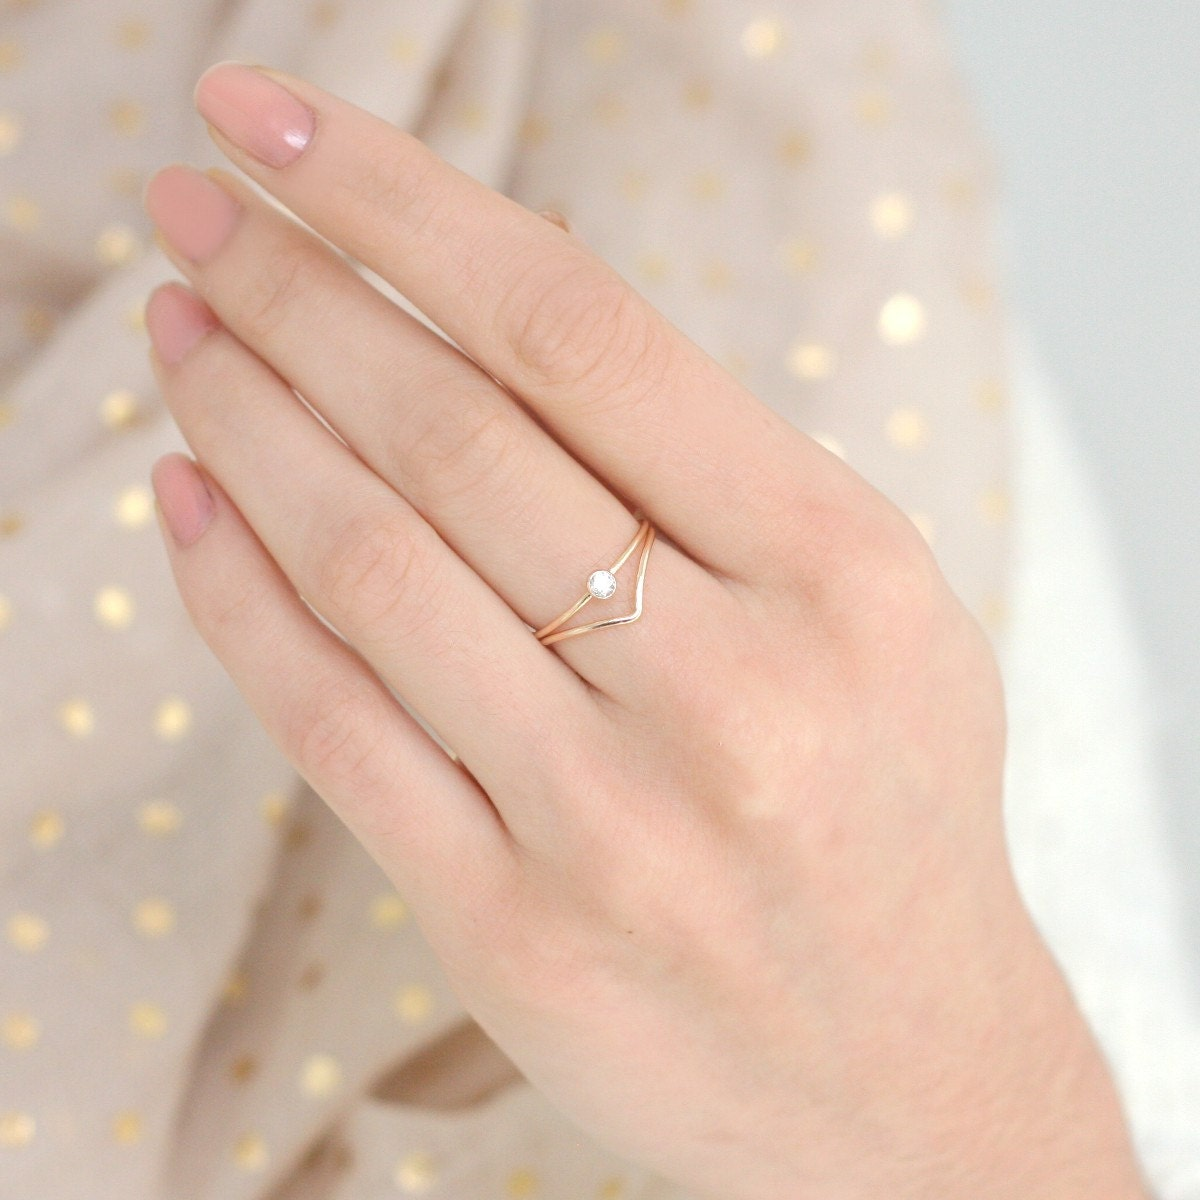 gold collections products white jewellery ring arlette rose rectangle rings engagement geometric serendipity